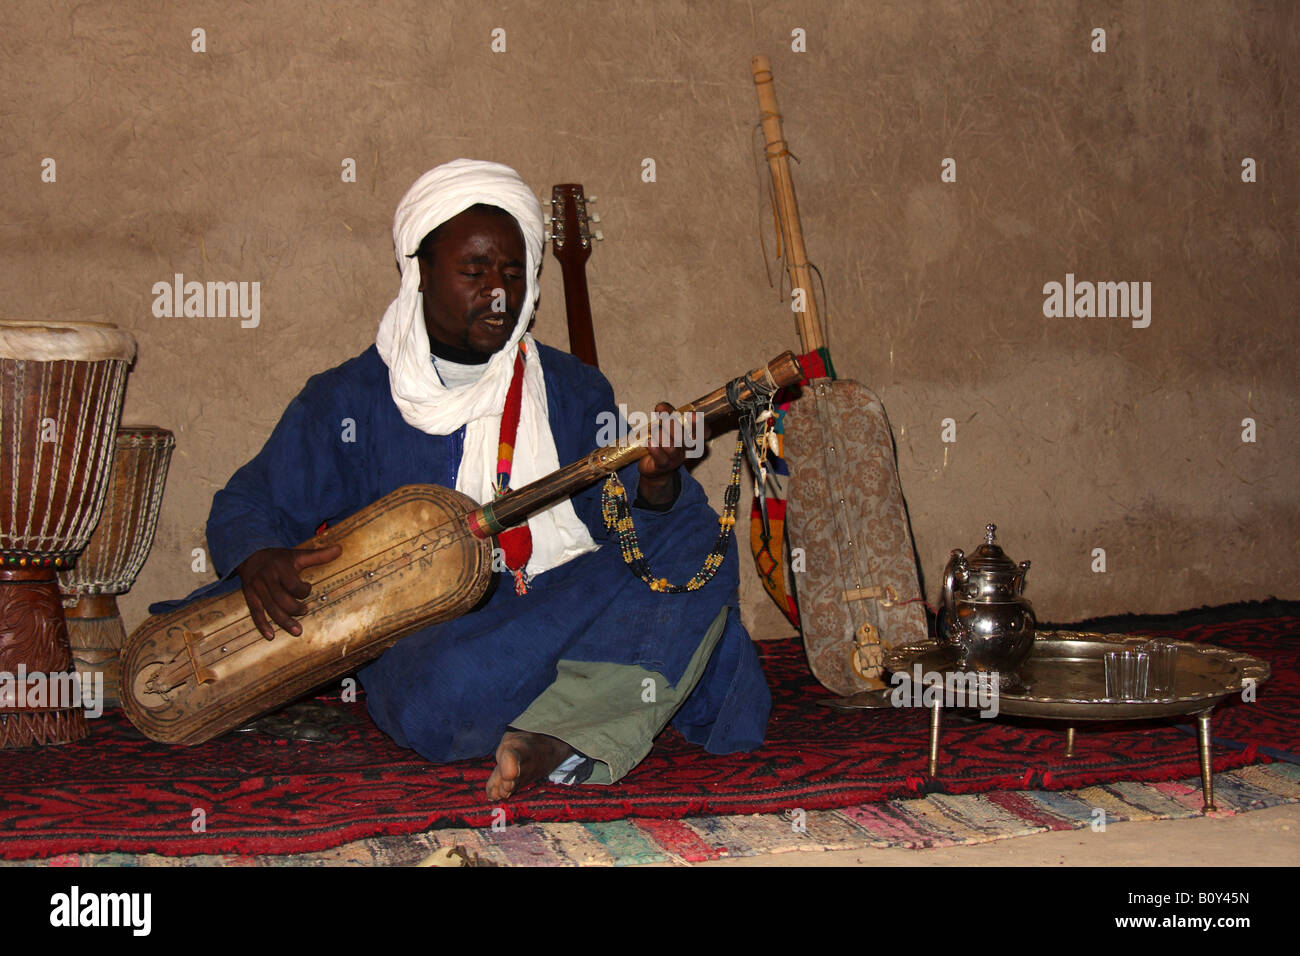 Playing the Hajhouj or guembri, Three stringed percussive lute, used in traditional Gnawa or Gnauoa Music of Khamlia - Stock Image